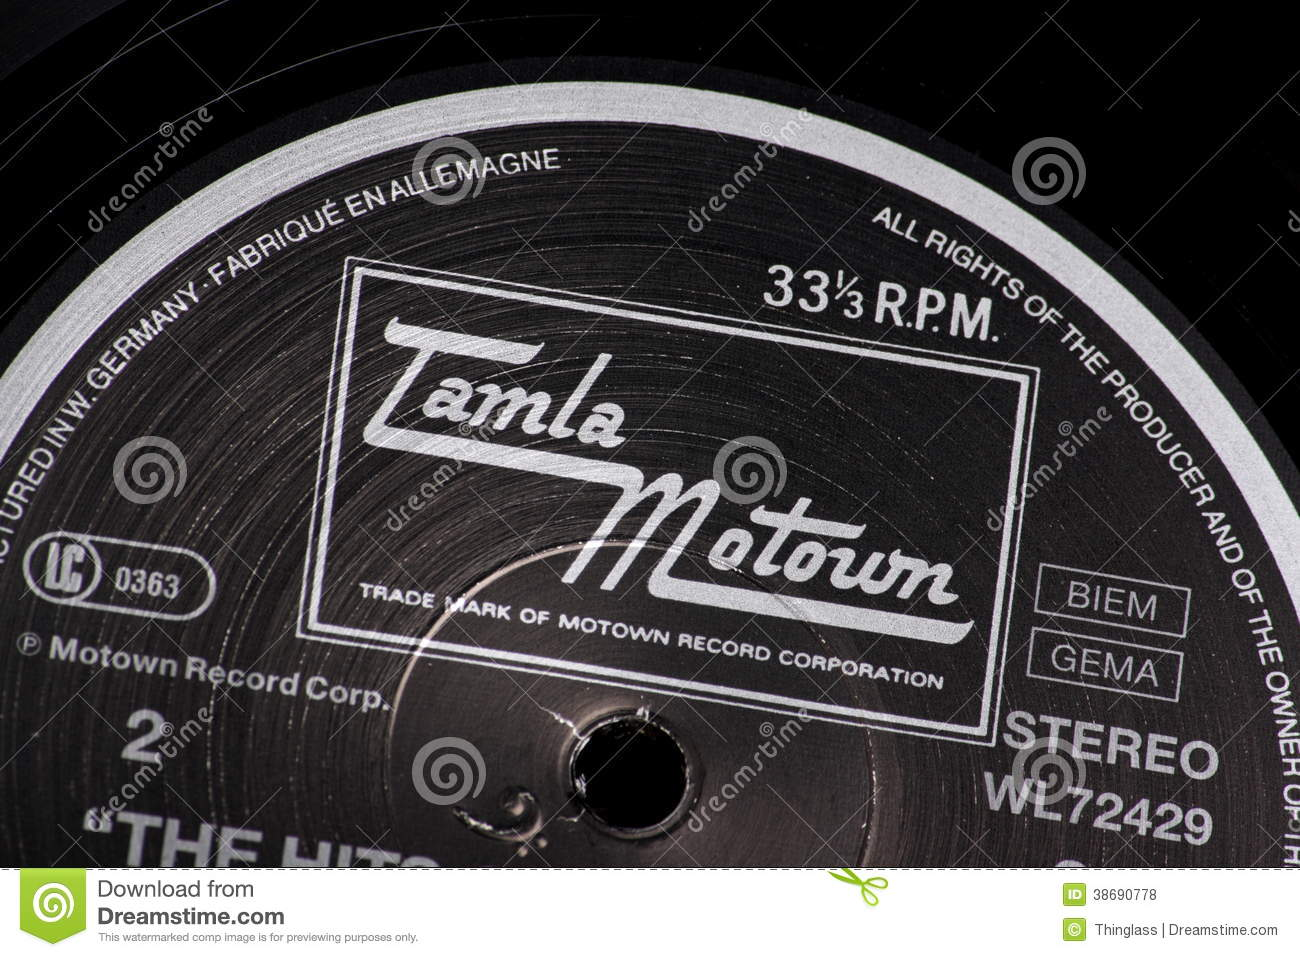 Tamla Motown Editorial Stock Photo Image 38690778